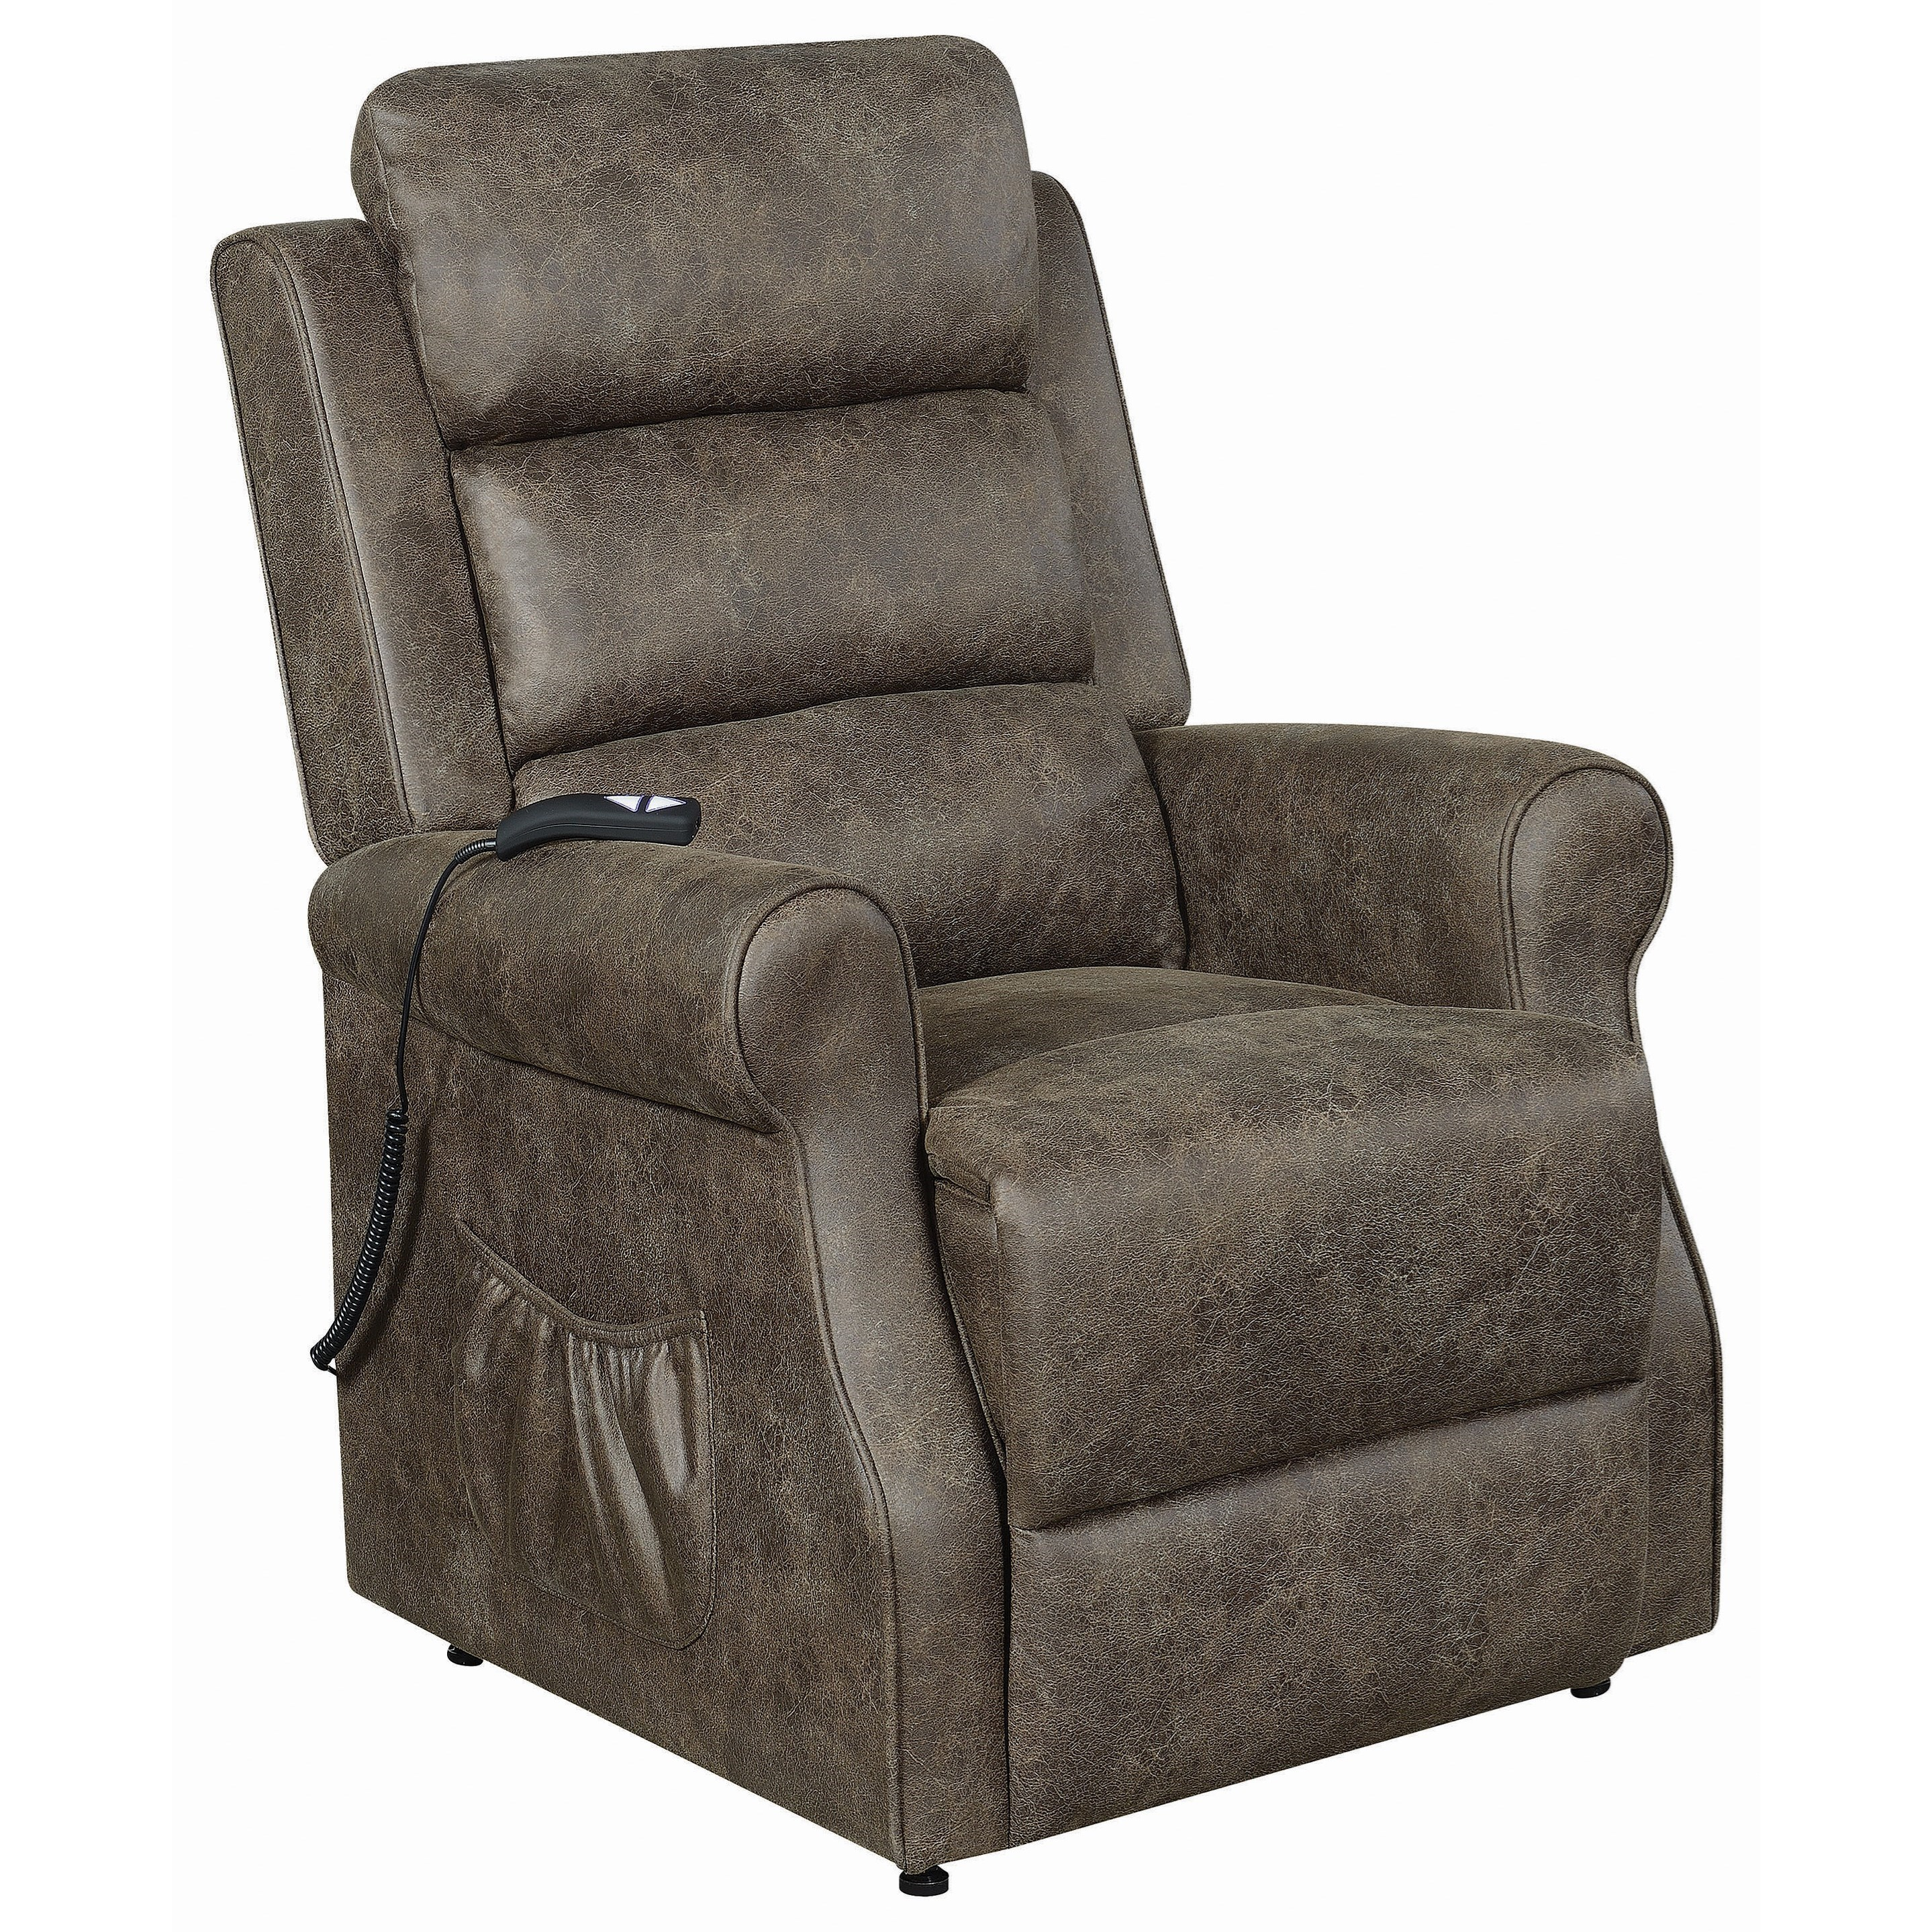 6503 Power Lift Recliner - Small by Coaster at Lapeer Furniture & Mattress Center